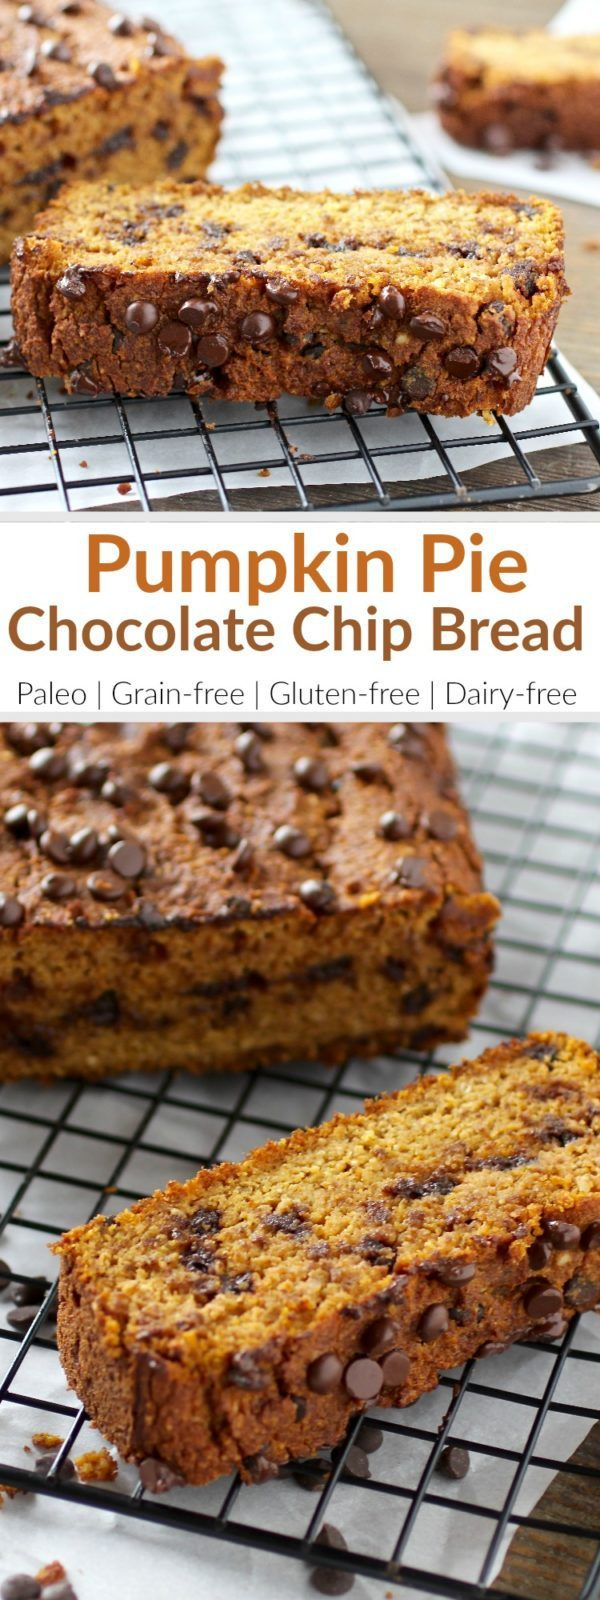 The added chocolate in this pumpkin bread will satisfy any sweet tooth and best of all, it's low in sugar. However, feel free to omit the chocolate if you'd rather this be more of a breakfast bread. Dried cranberries or cherries work well too! This Pumpki